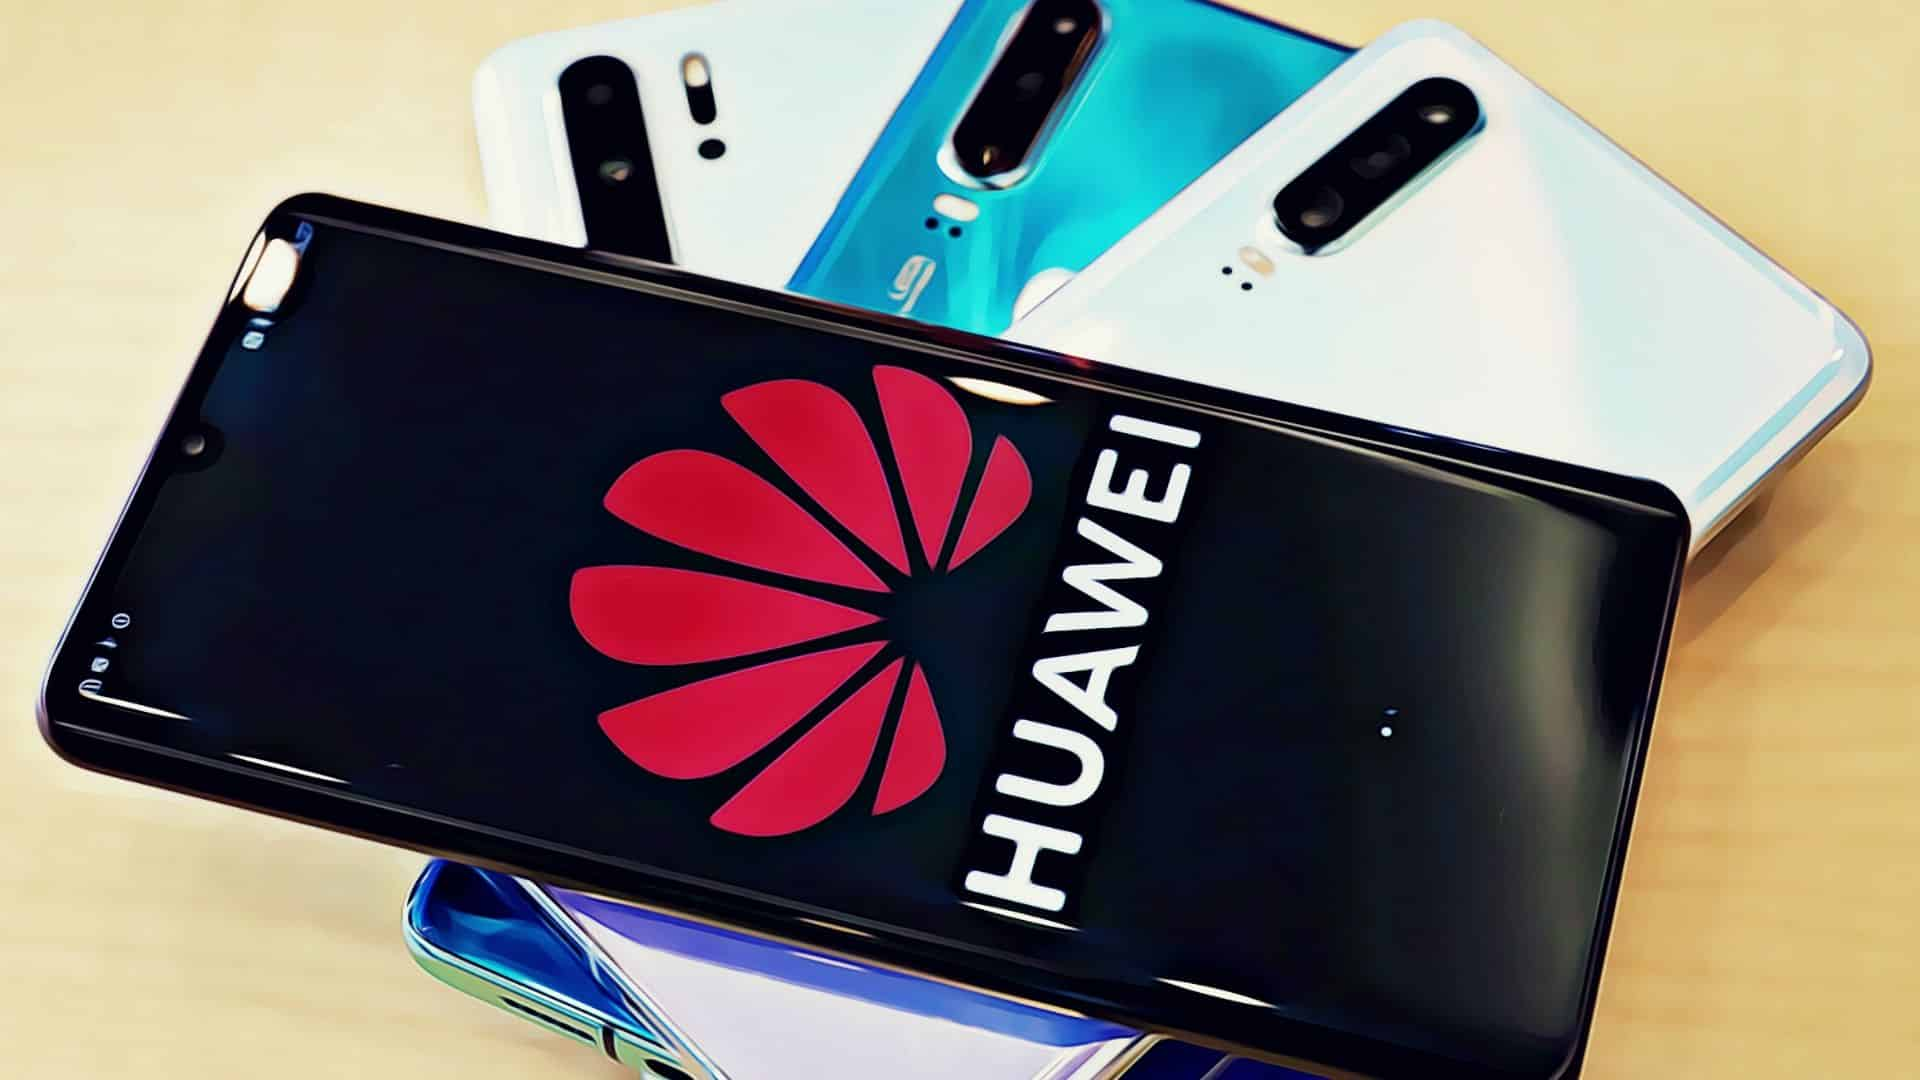 Huawei to launch the Mate 30 Pro